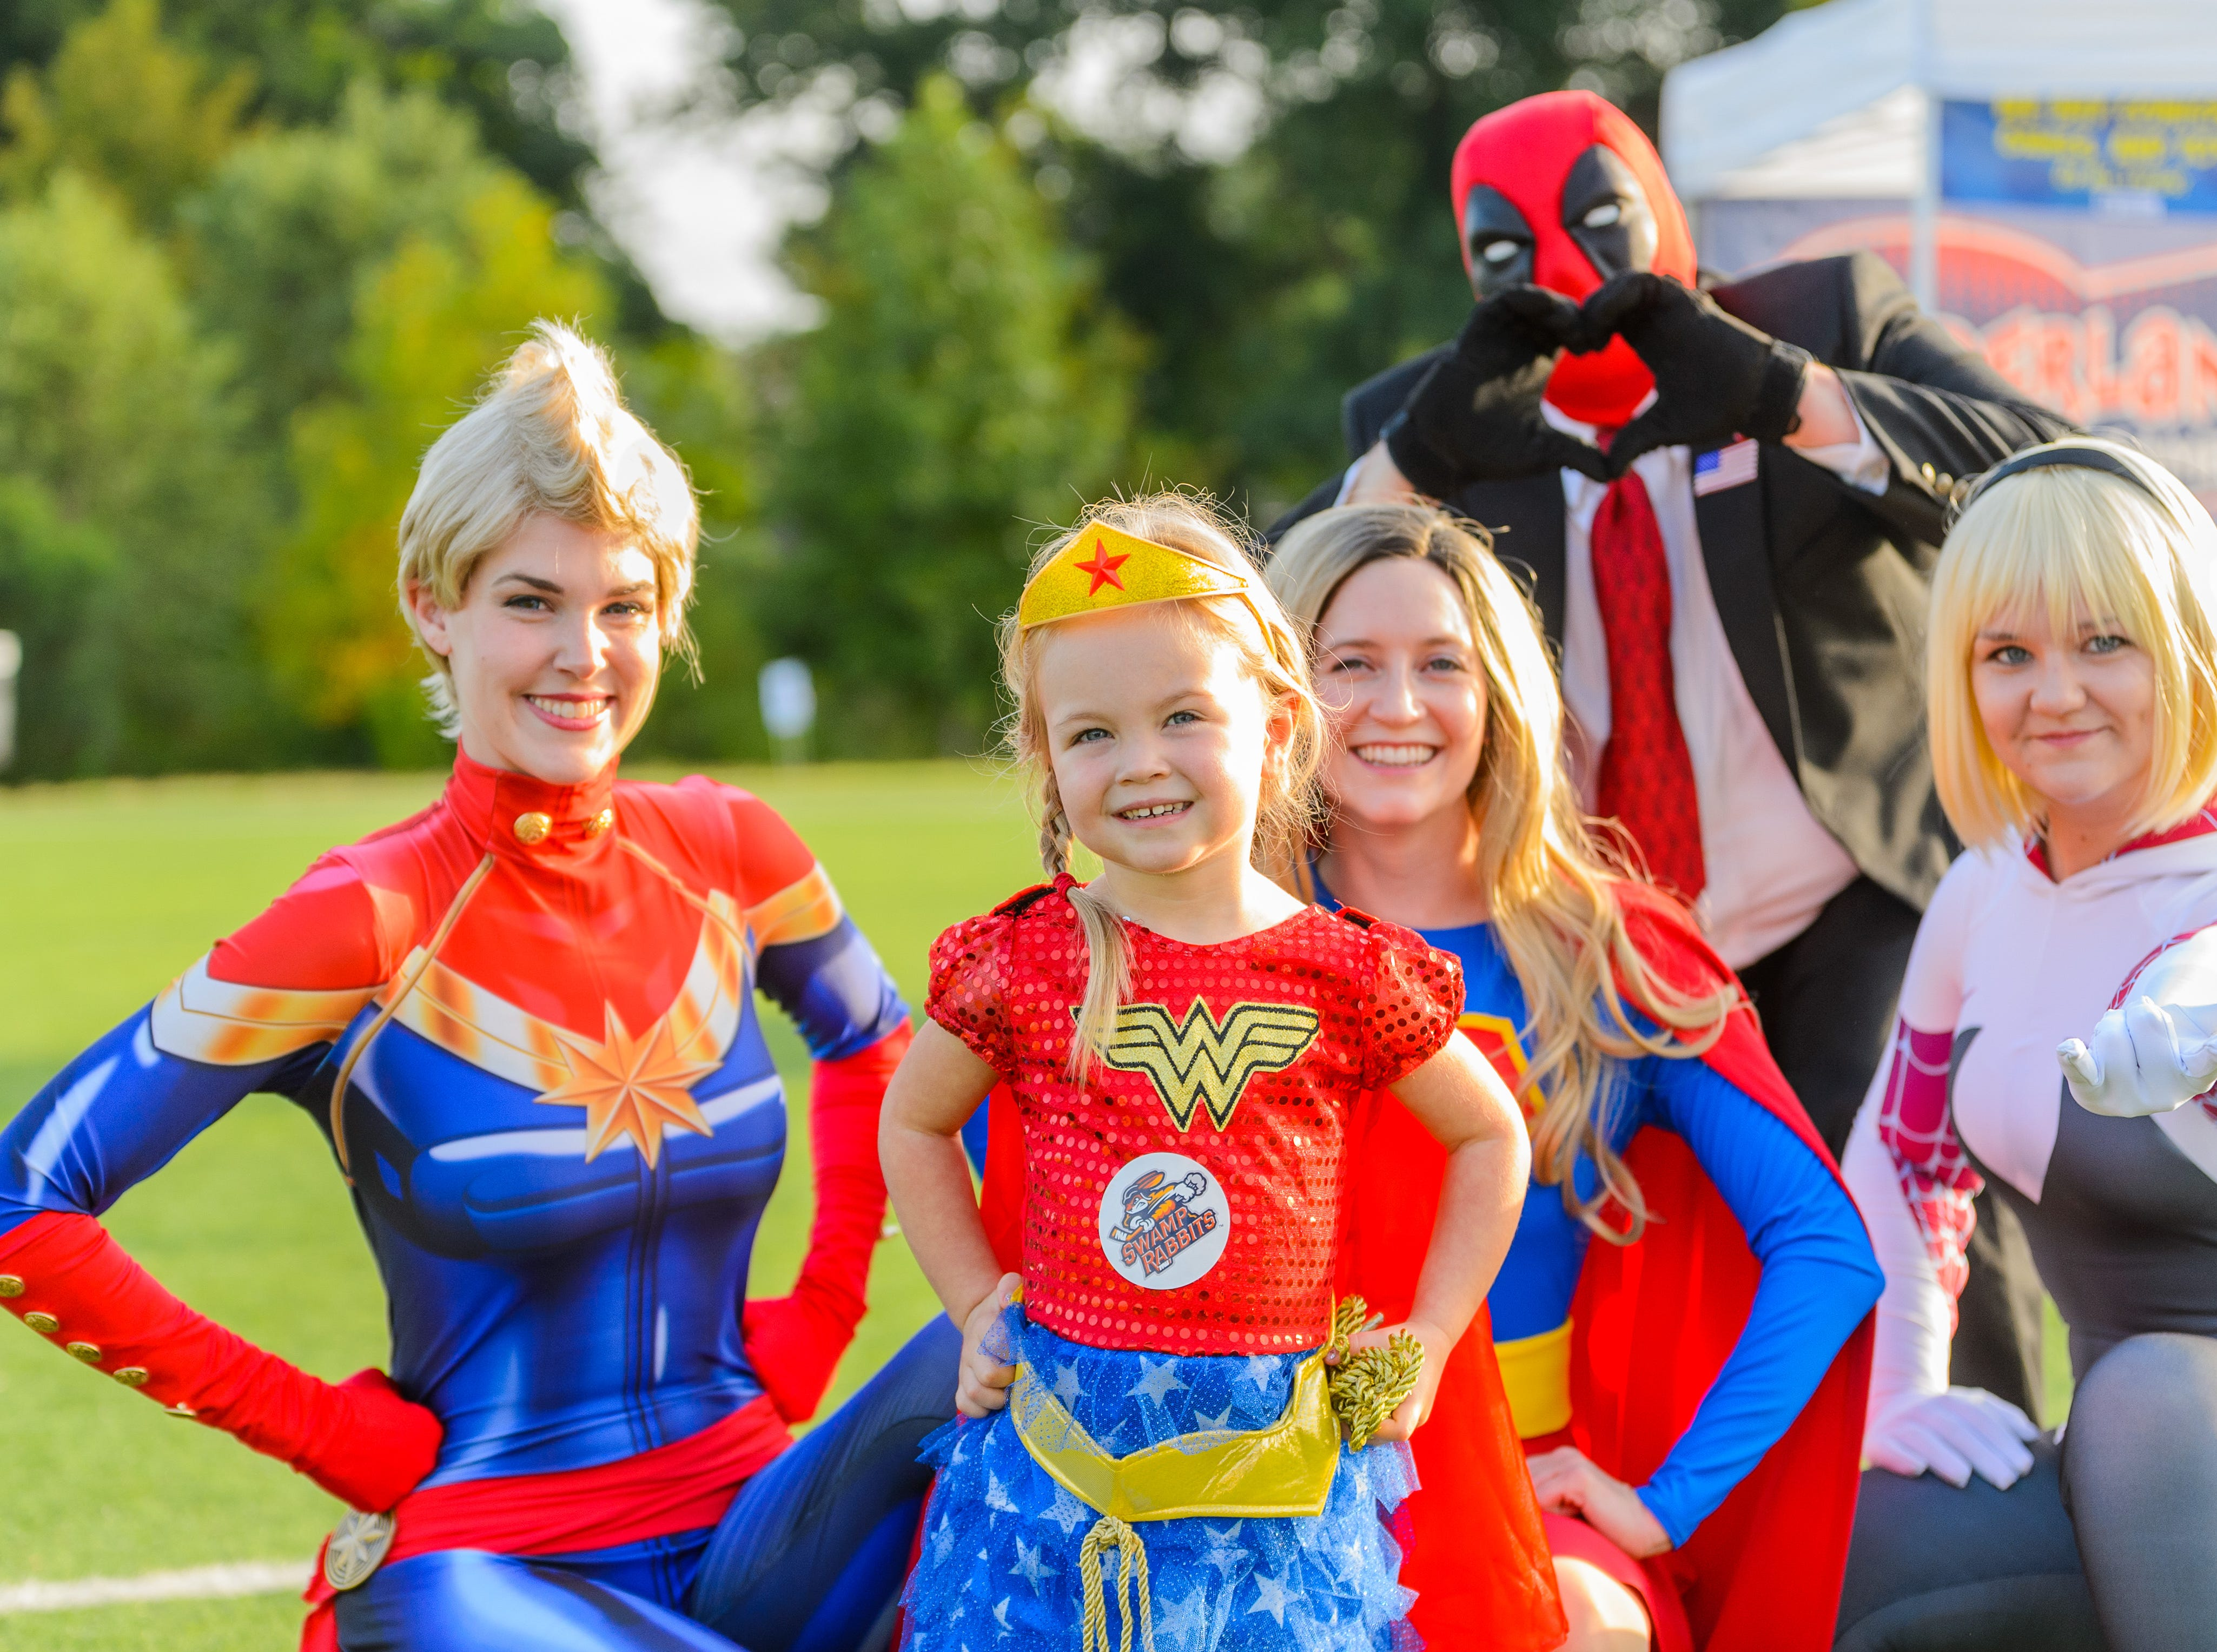 2 year old Harper Hunter (front) poses for a picture with volunteers from SC Upstate Heros during the 4th annual Superhero 5K to benefit The Salvation Army Boys & Girls Club is held on Saturday, August 11, 2018 at the Kroc Center in Downtown Greenville.